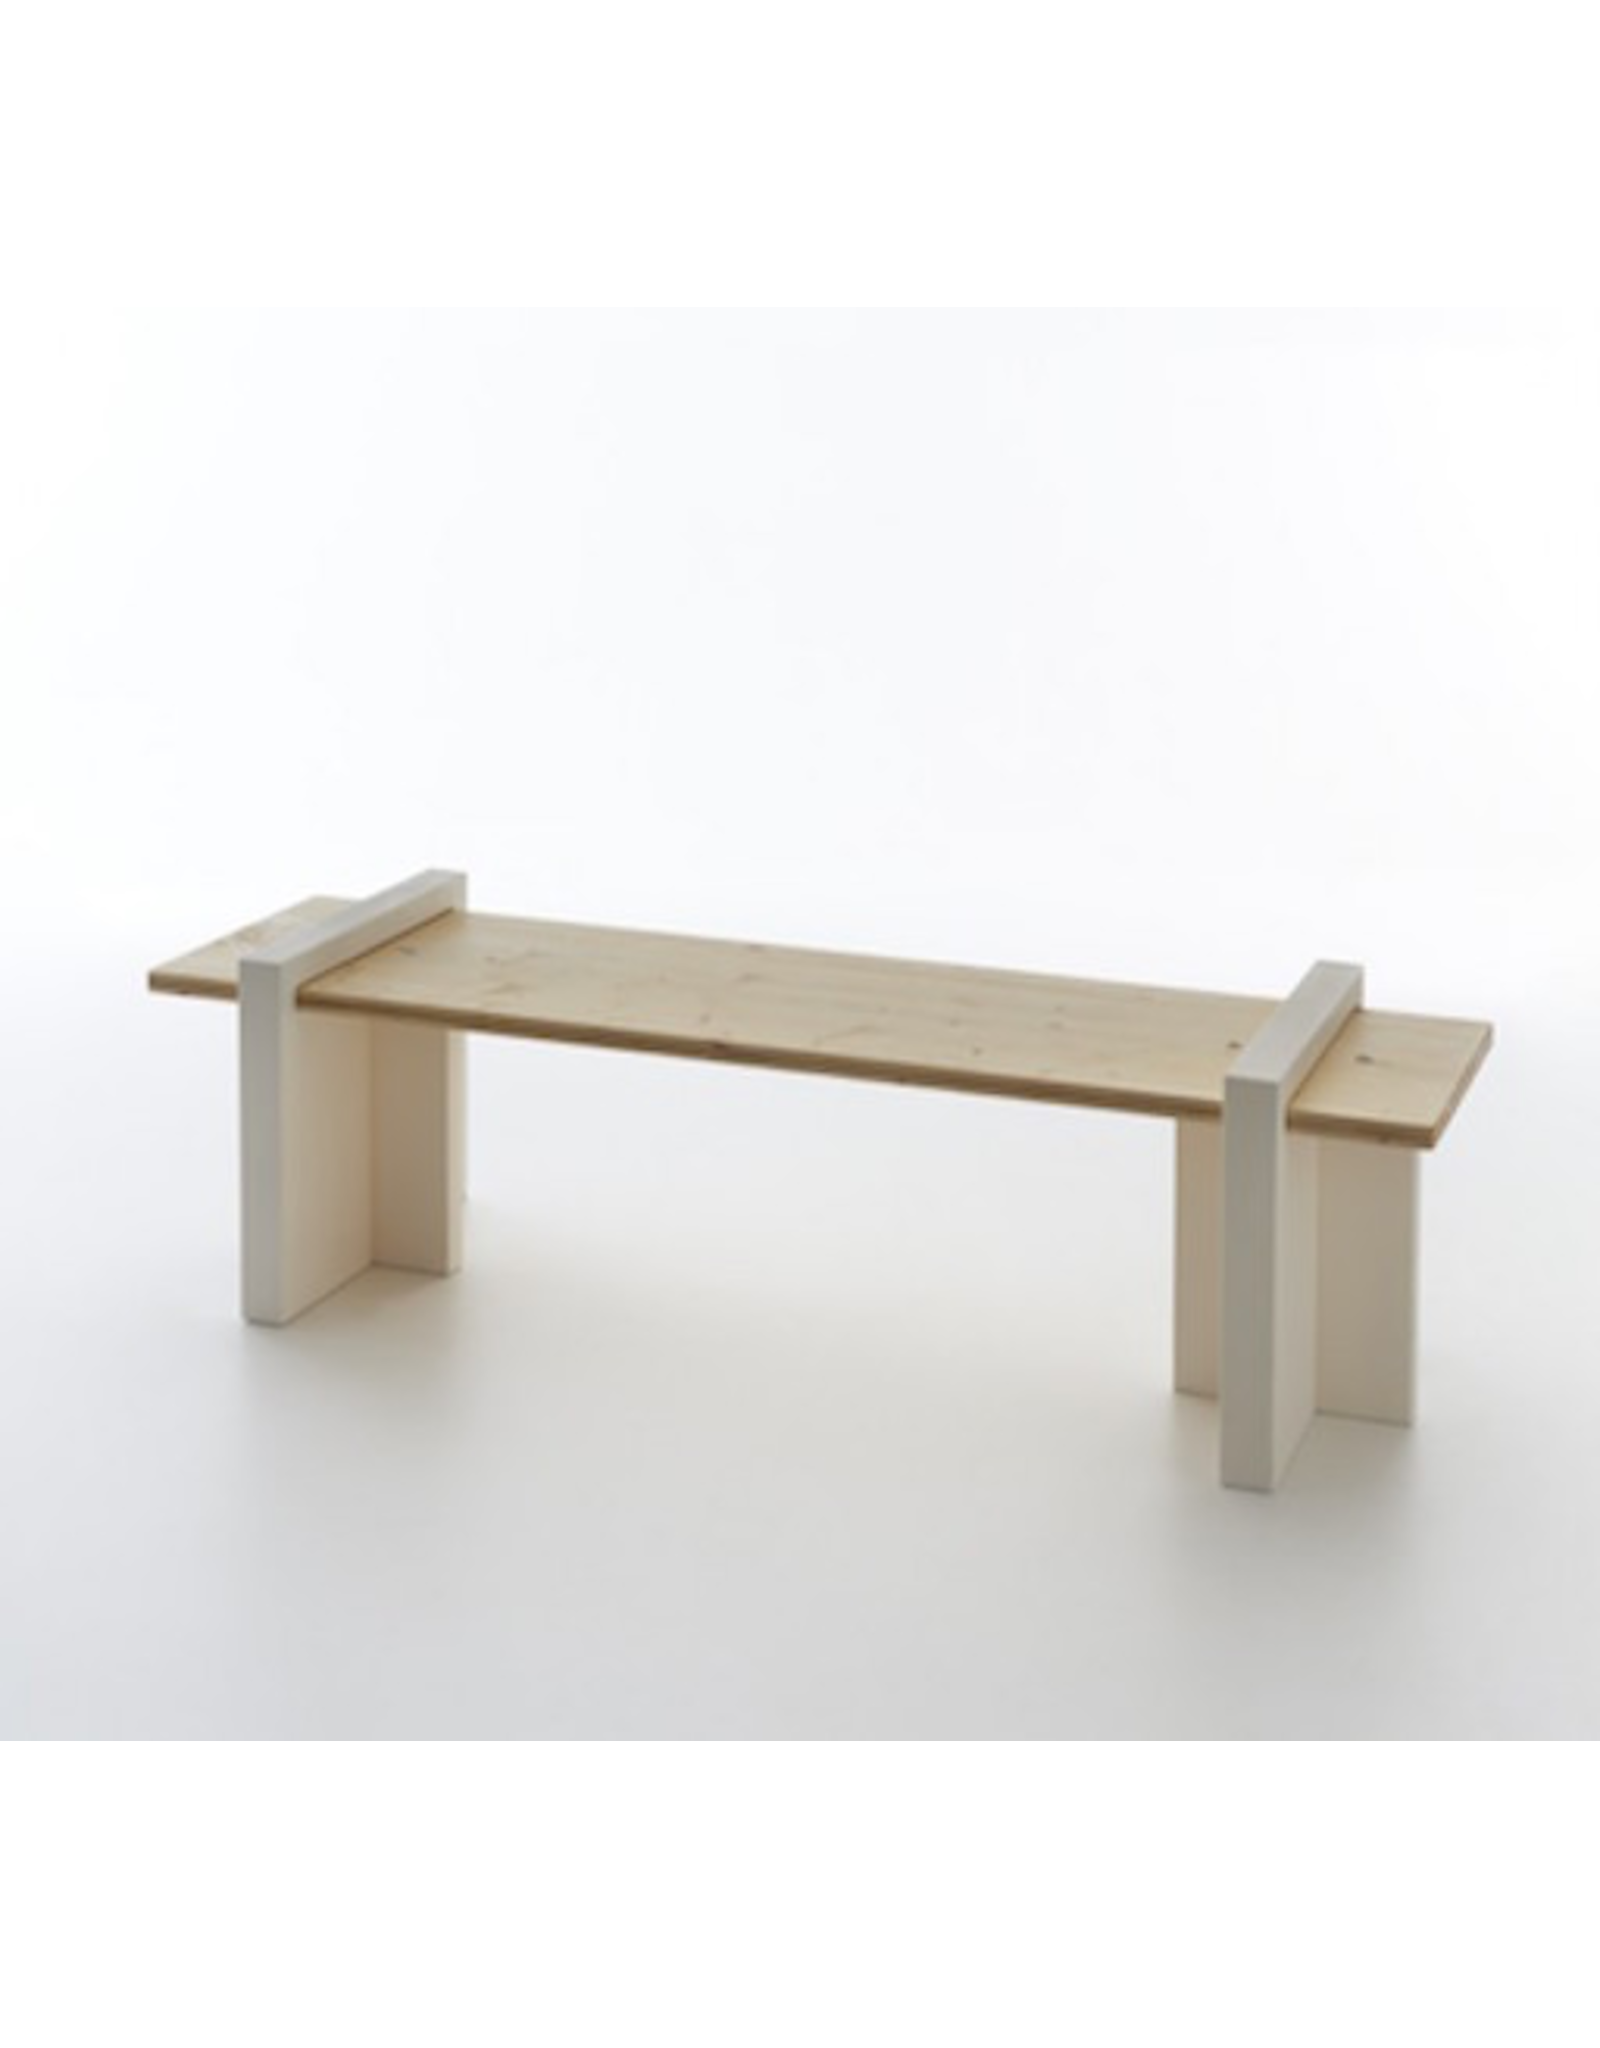 SERRALUNGA PLAY WOOD BENCH, FIR WOOD AXIS TREATED FOR OUTDOOR